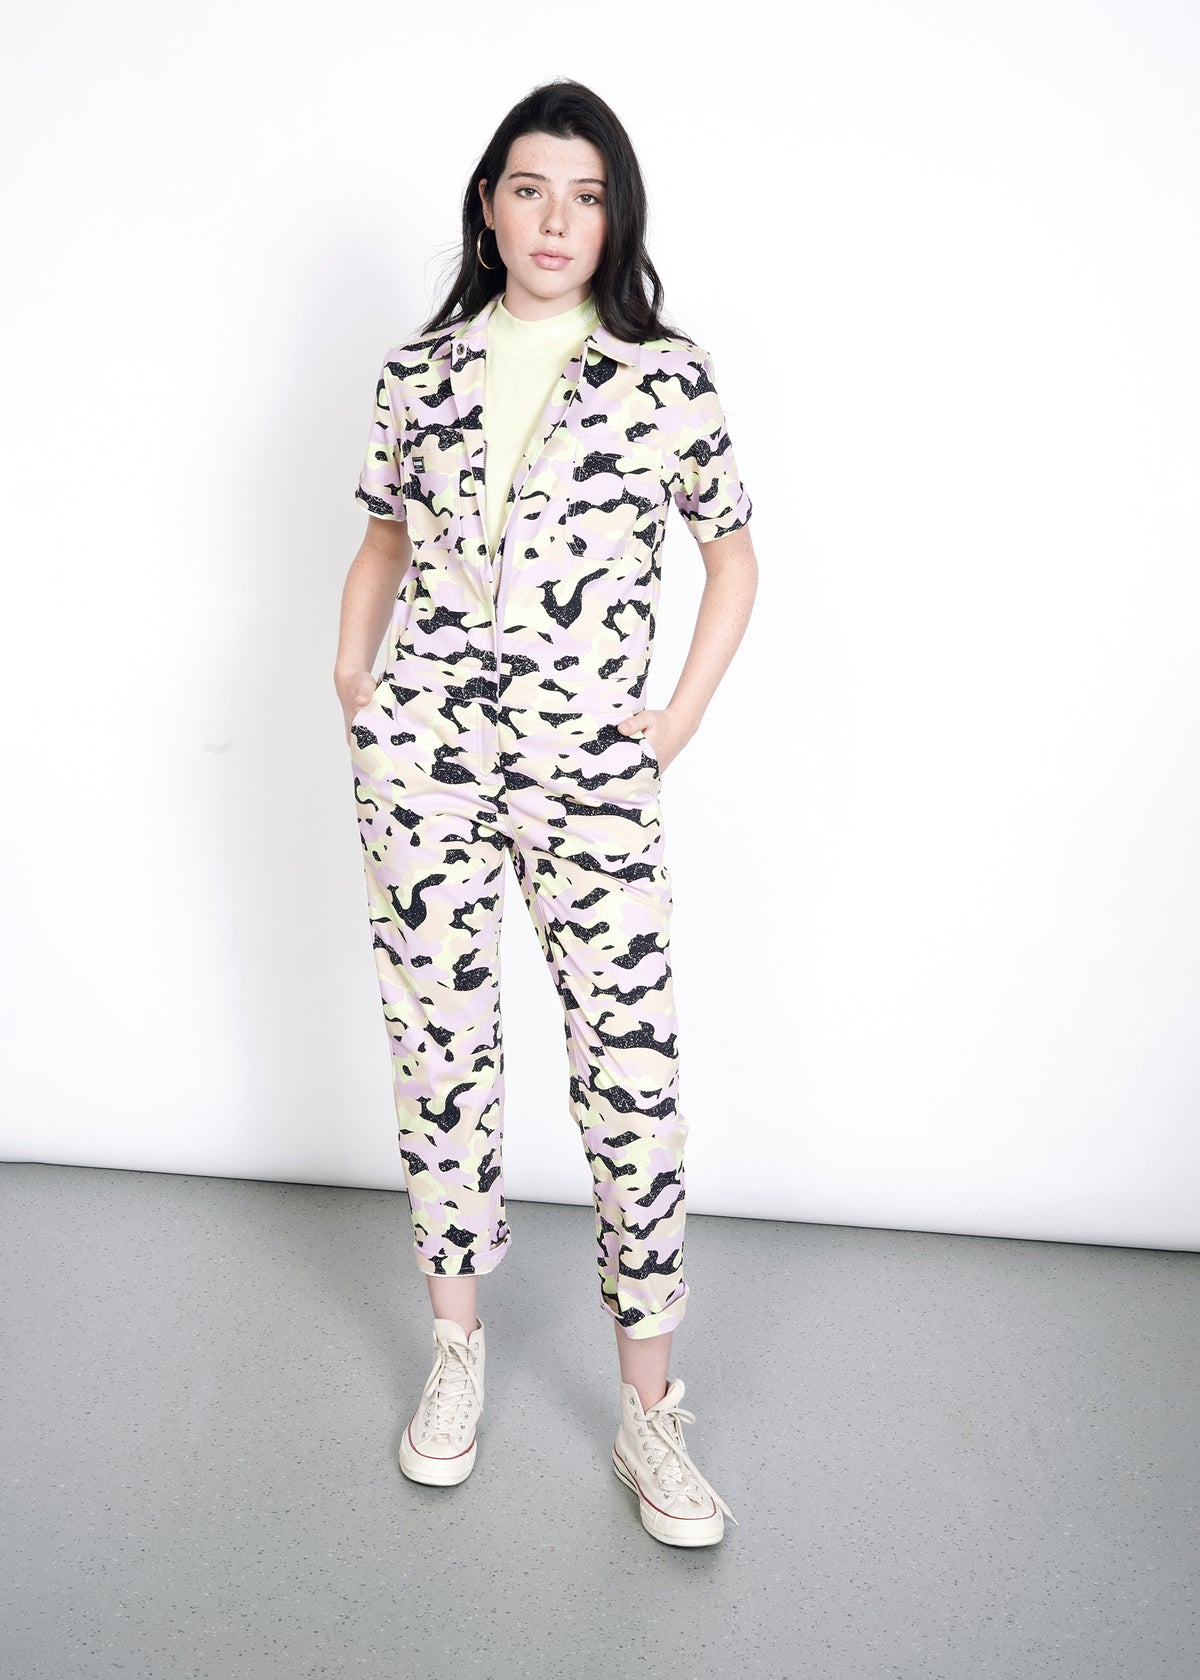 Model wearing lavender, celadon, black, and tan camouflage all over print short sleeve coverall jumpsuit in size S, with hands in pockets and green tank underneath